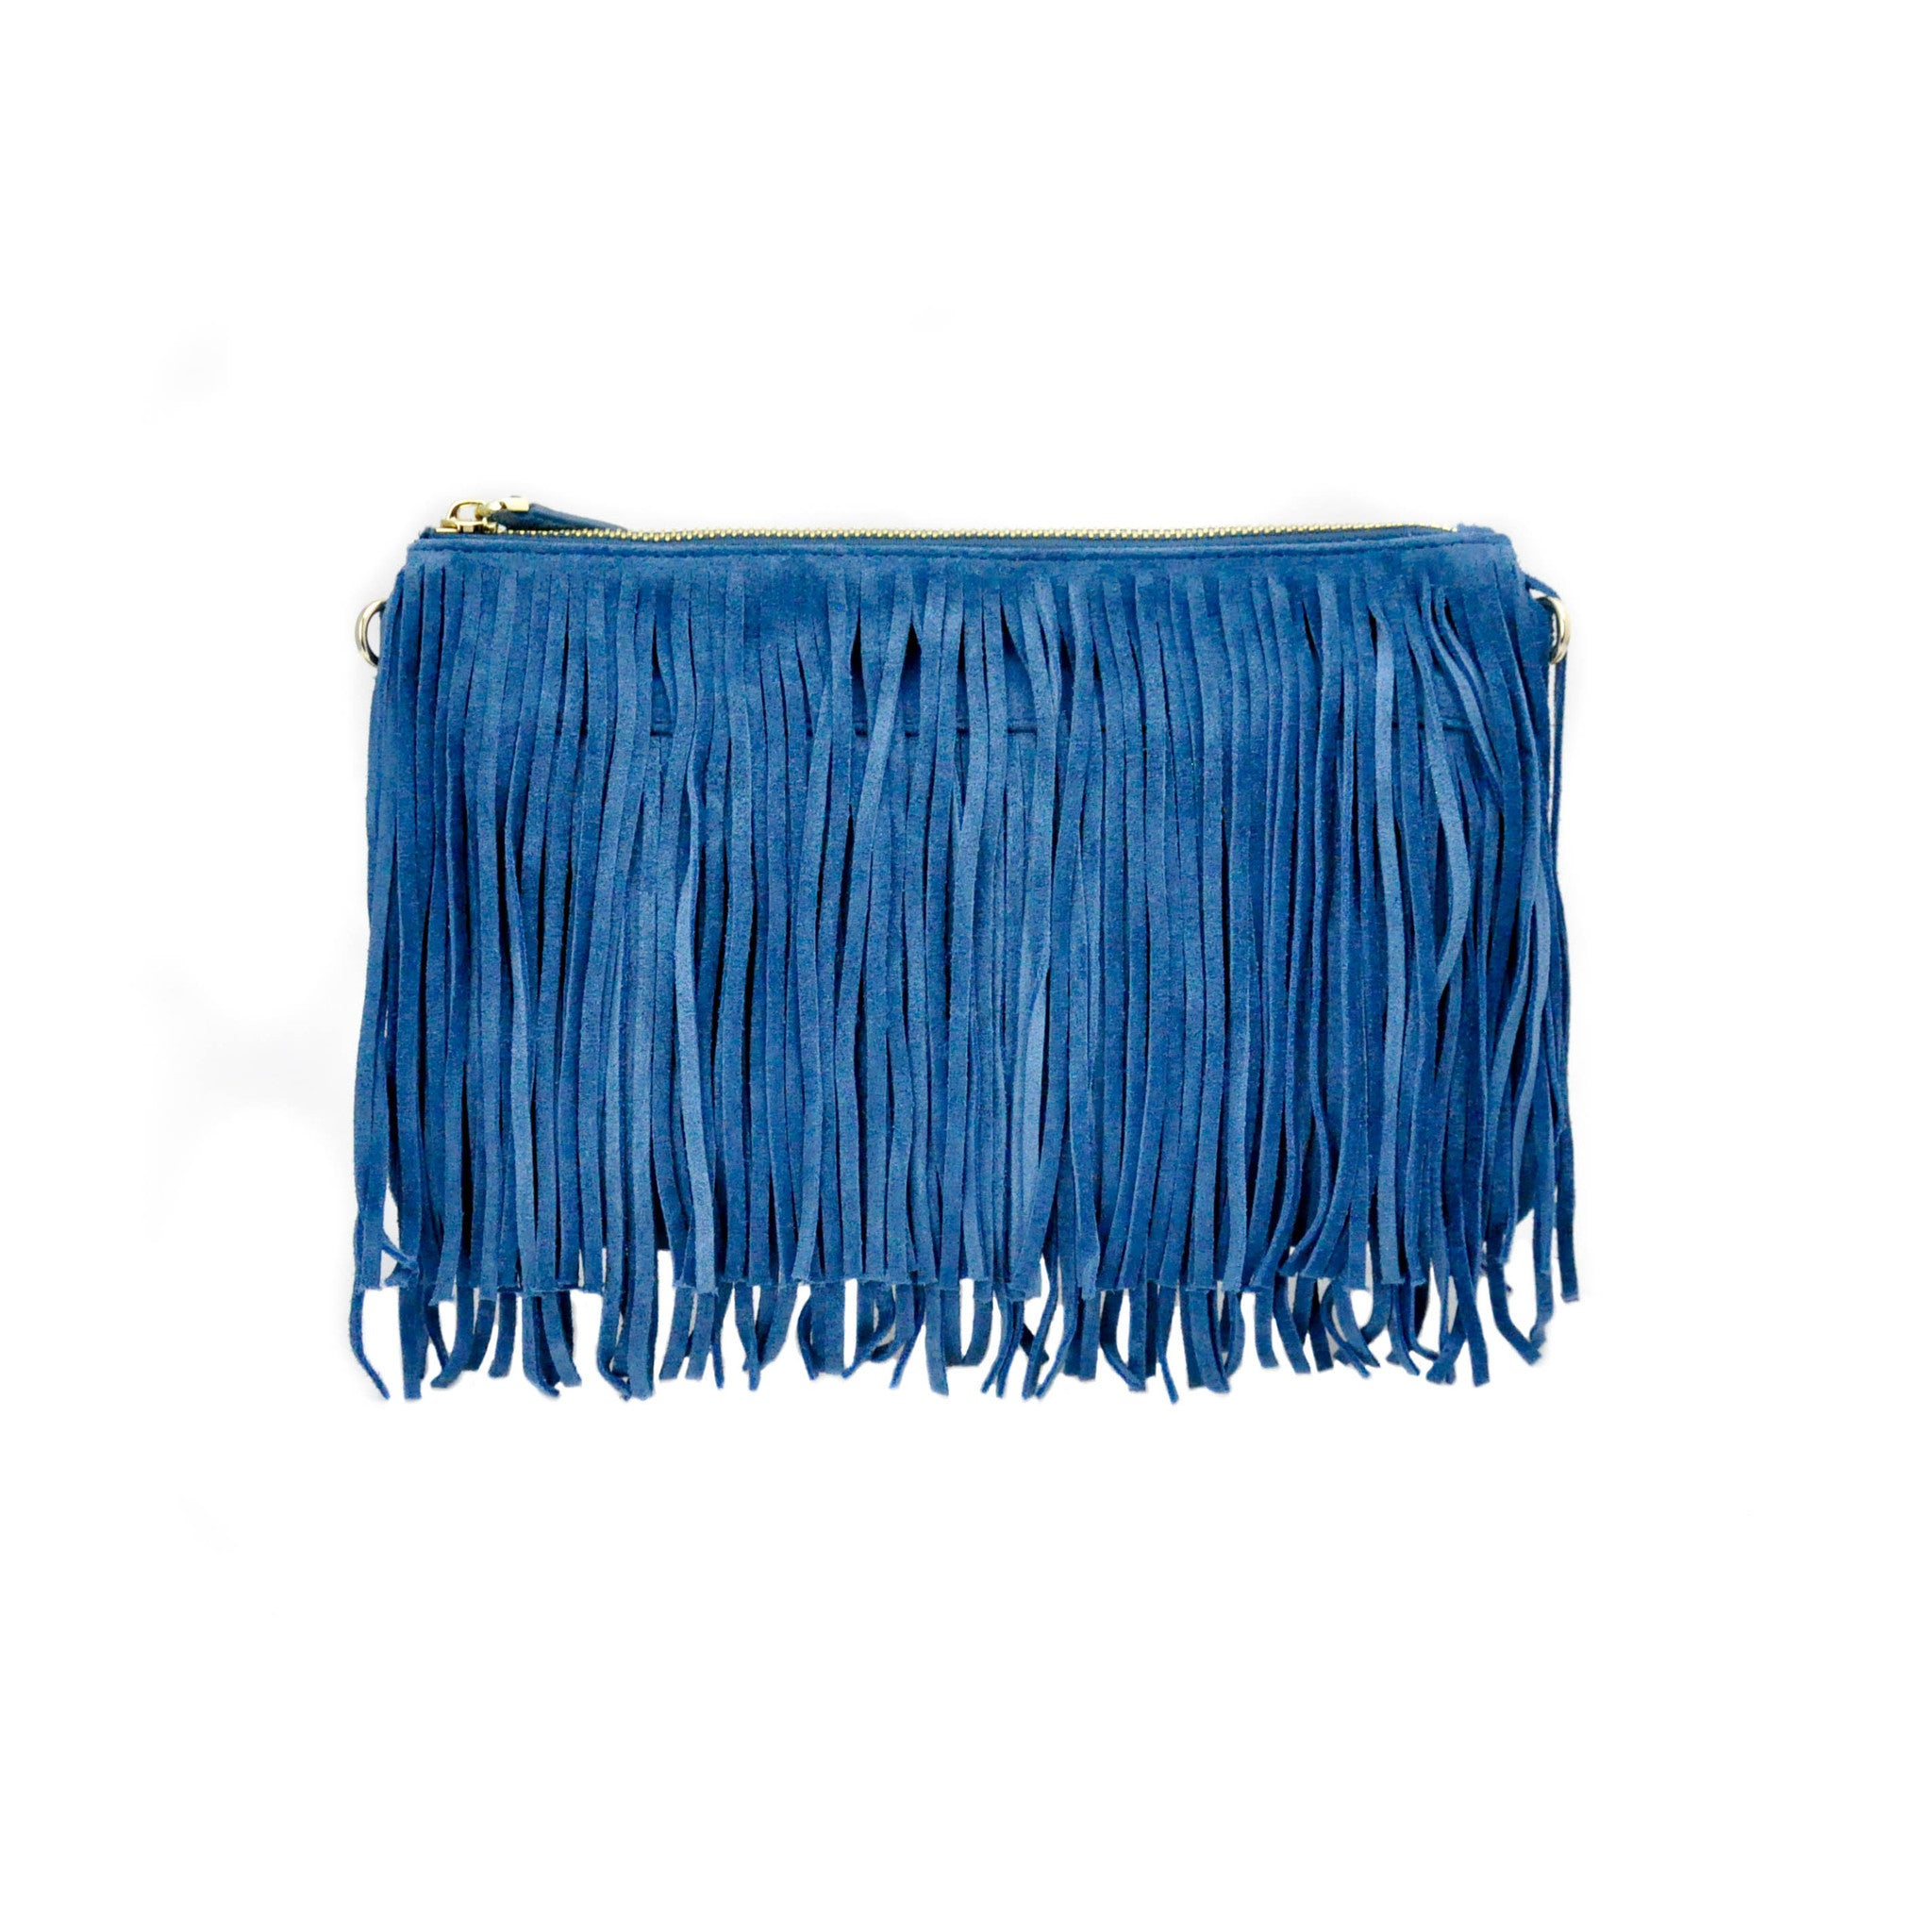 Charging Suede Blue Cross-body - LoveEmme, Product_Type, Product_Vendor